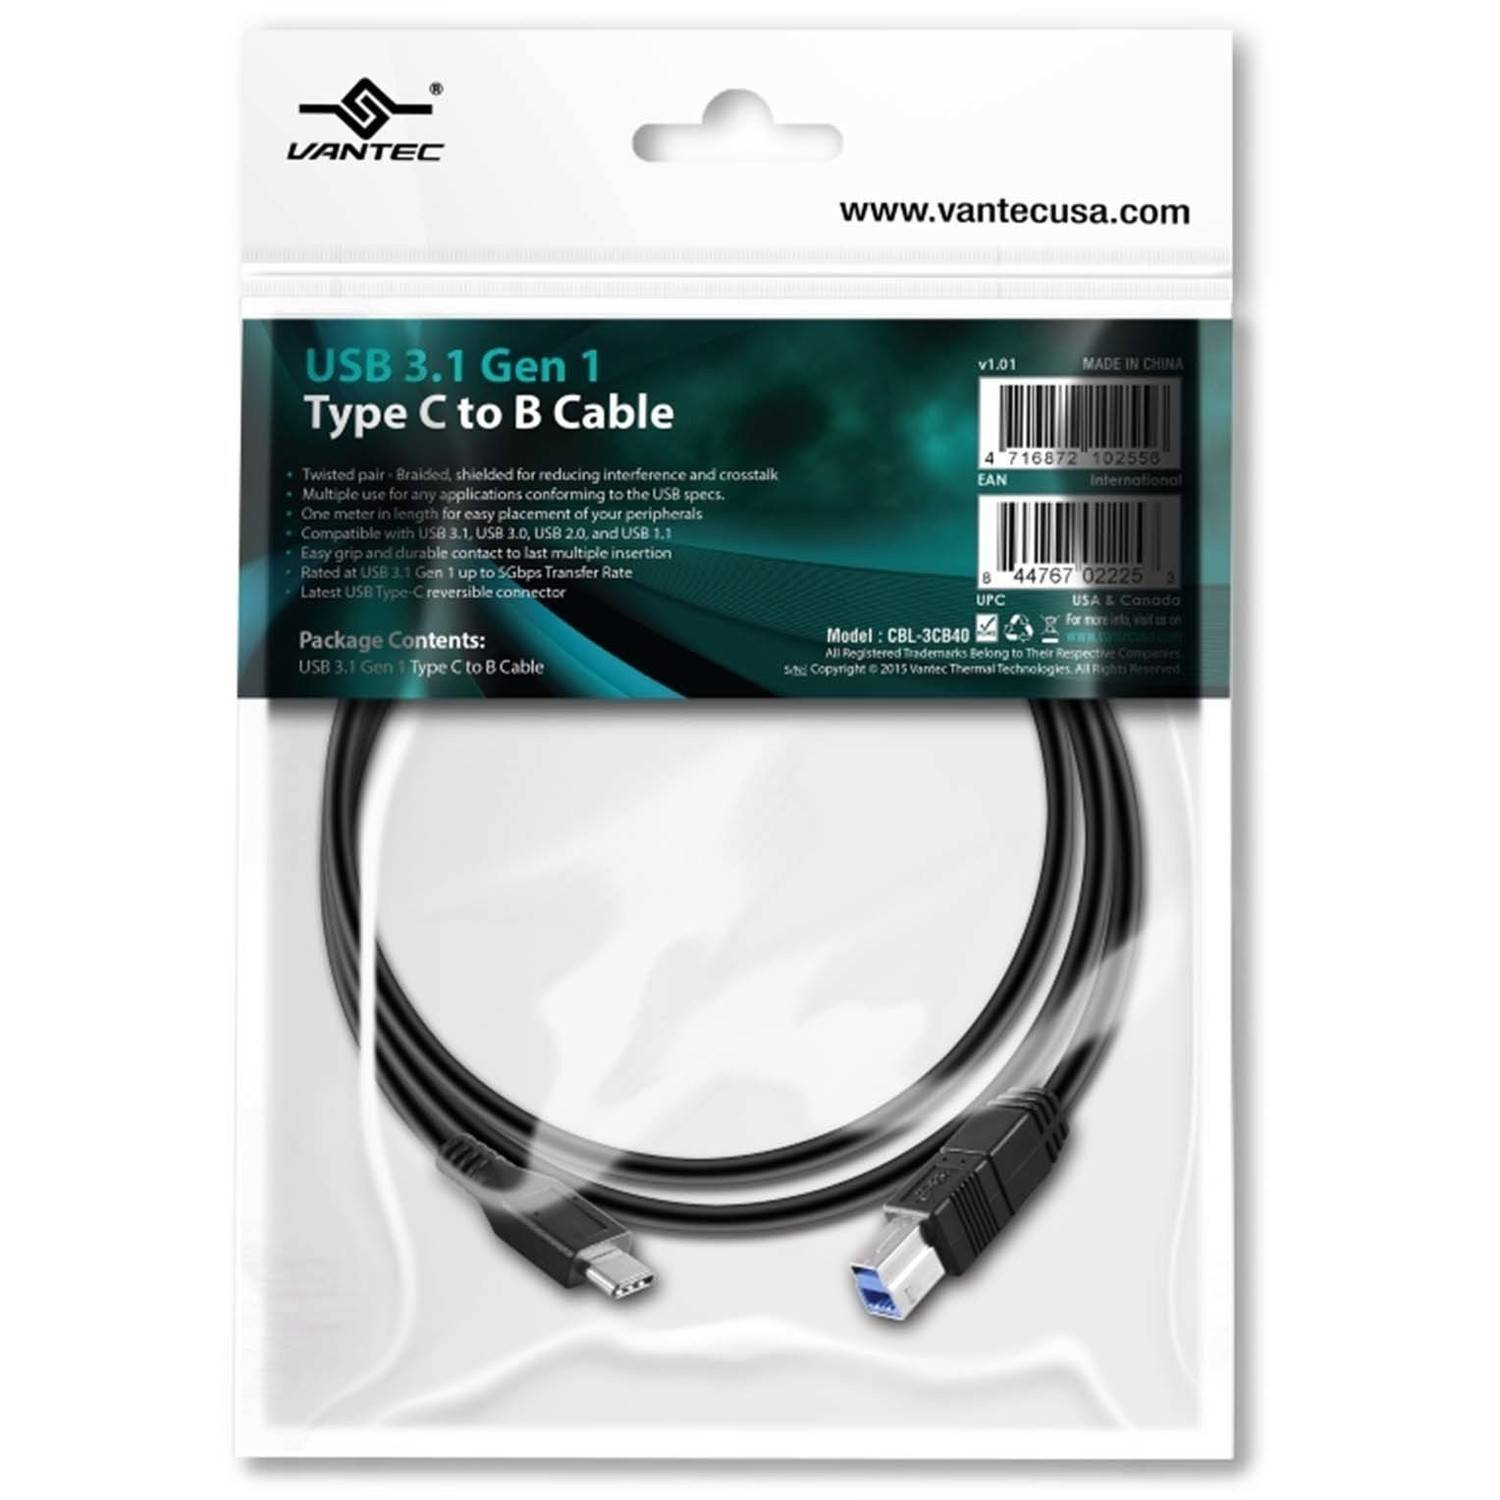 Vantec CBL-3CB40 USB 3.1 Type C to USB-B Cable, Black